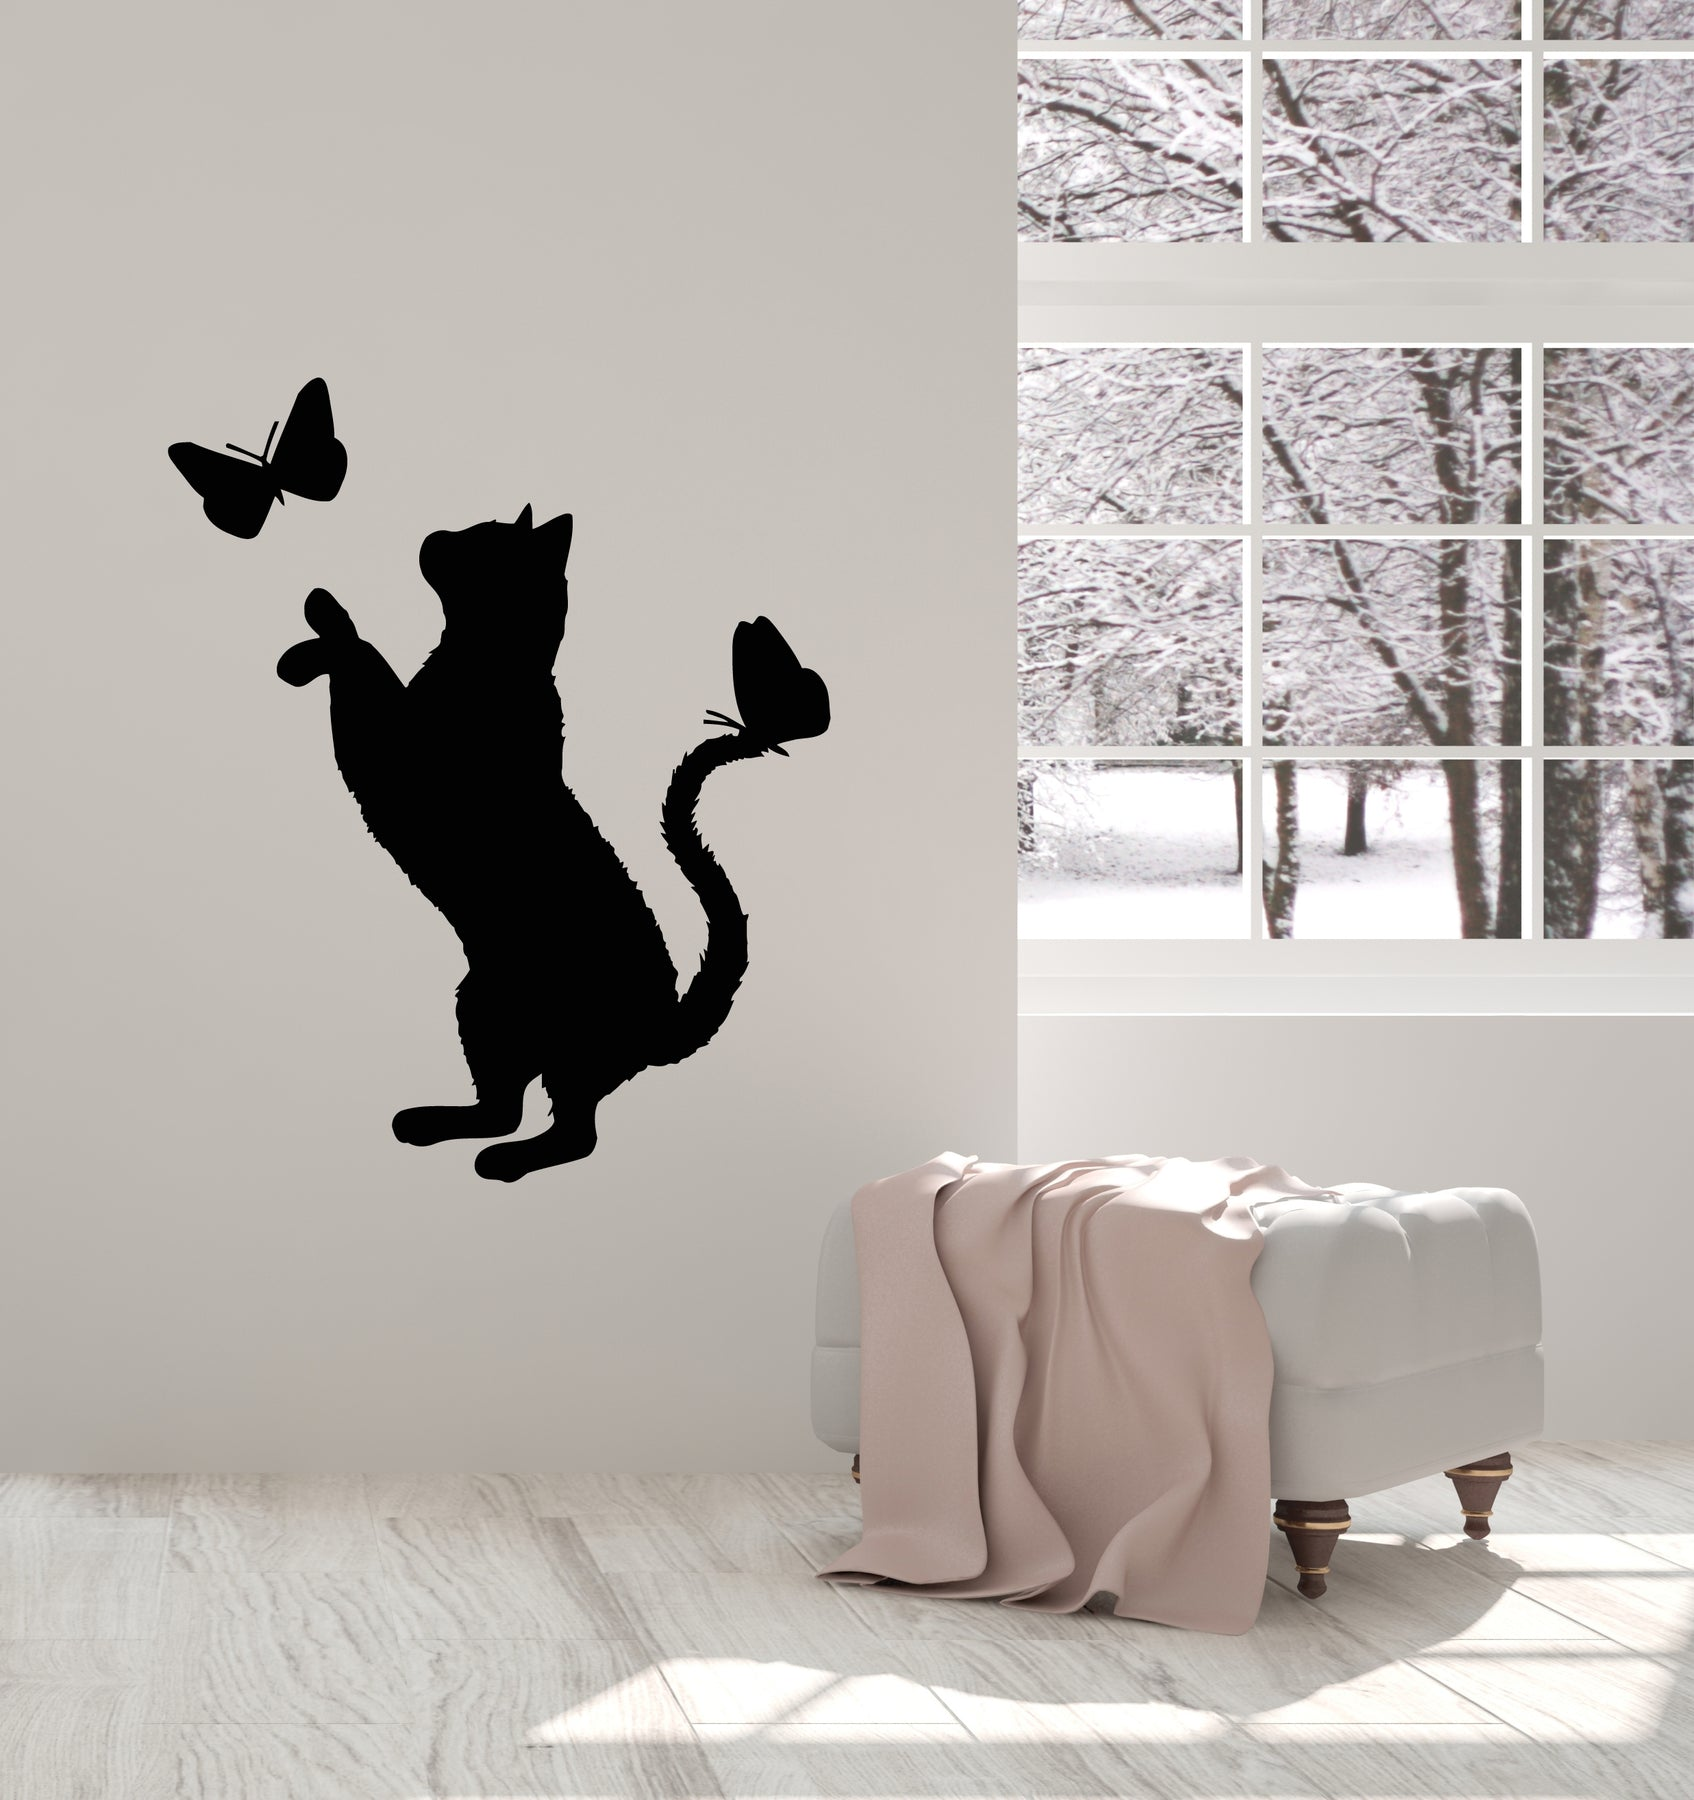 Tree Branch Cat Wall Decal Sticker WS-17134